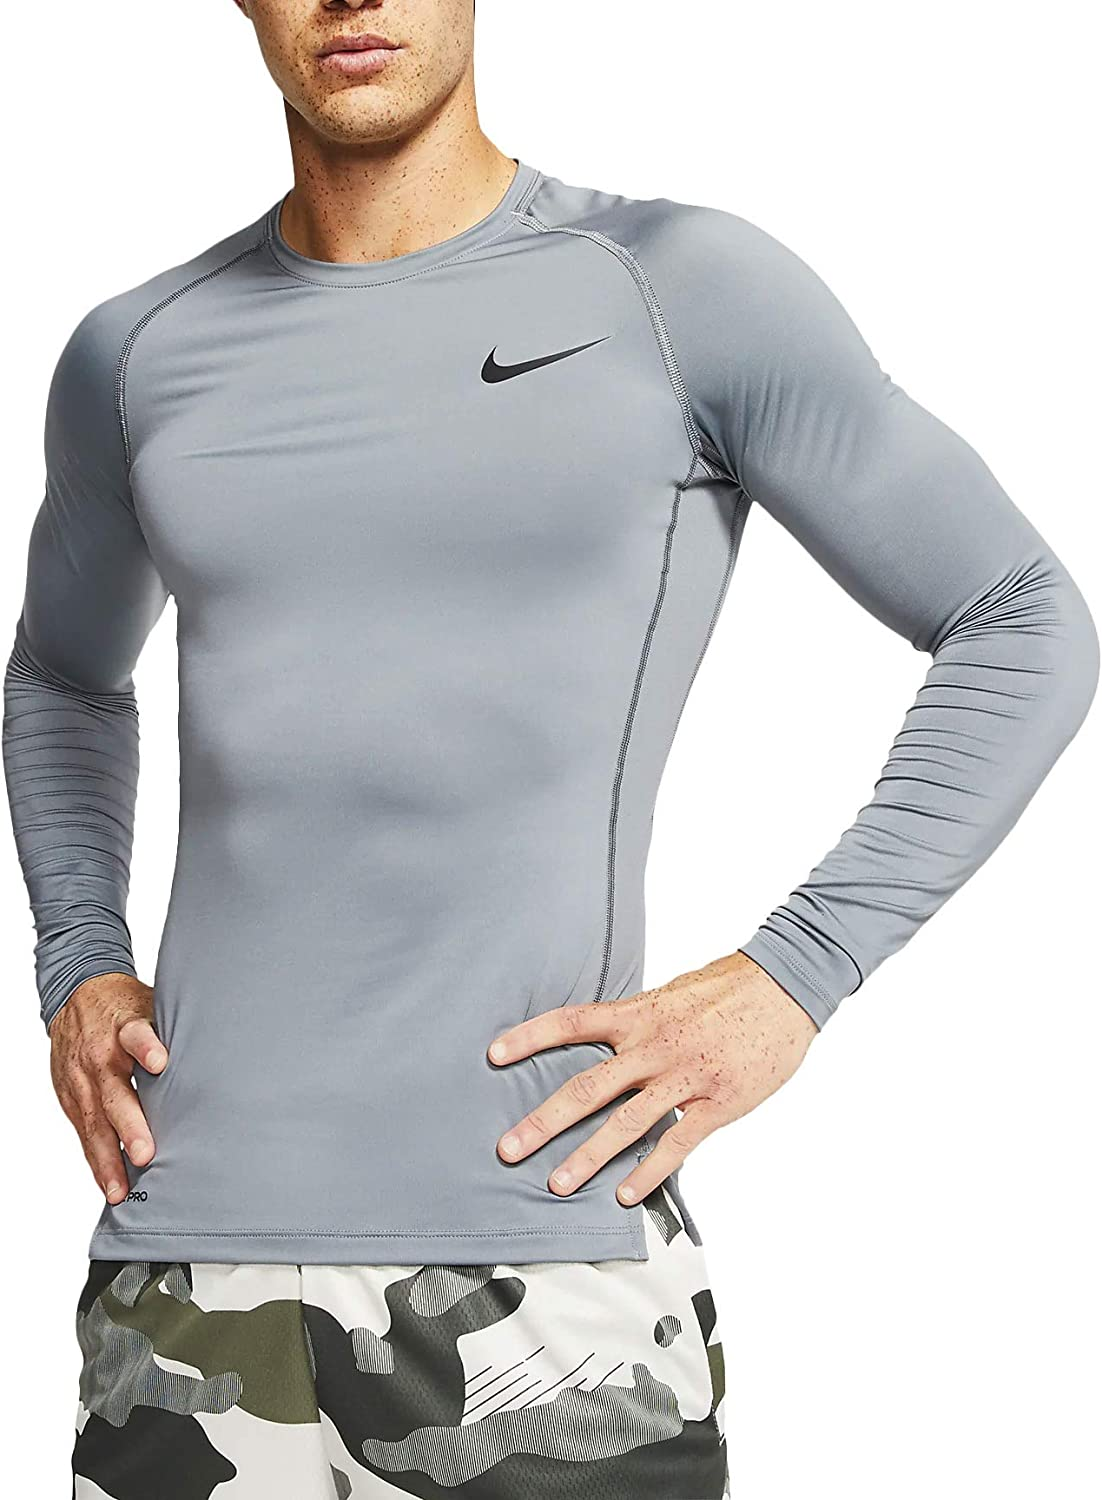 Intrattenere Sputare forare  Nike Pro Mens Long Sleeve Dri-Fit Training Shirts Top BV5588-084 Size XLT  at Amazon Men's Clothing store